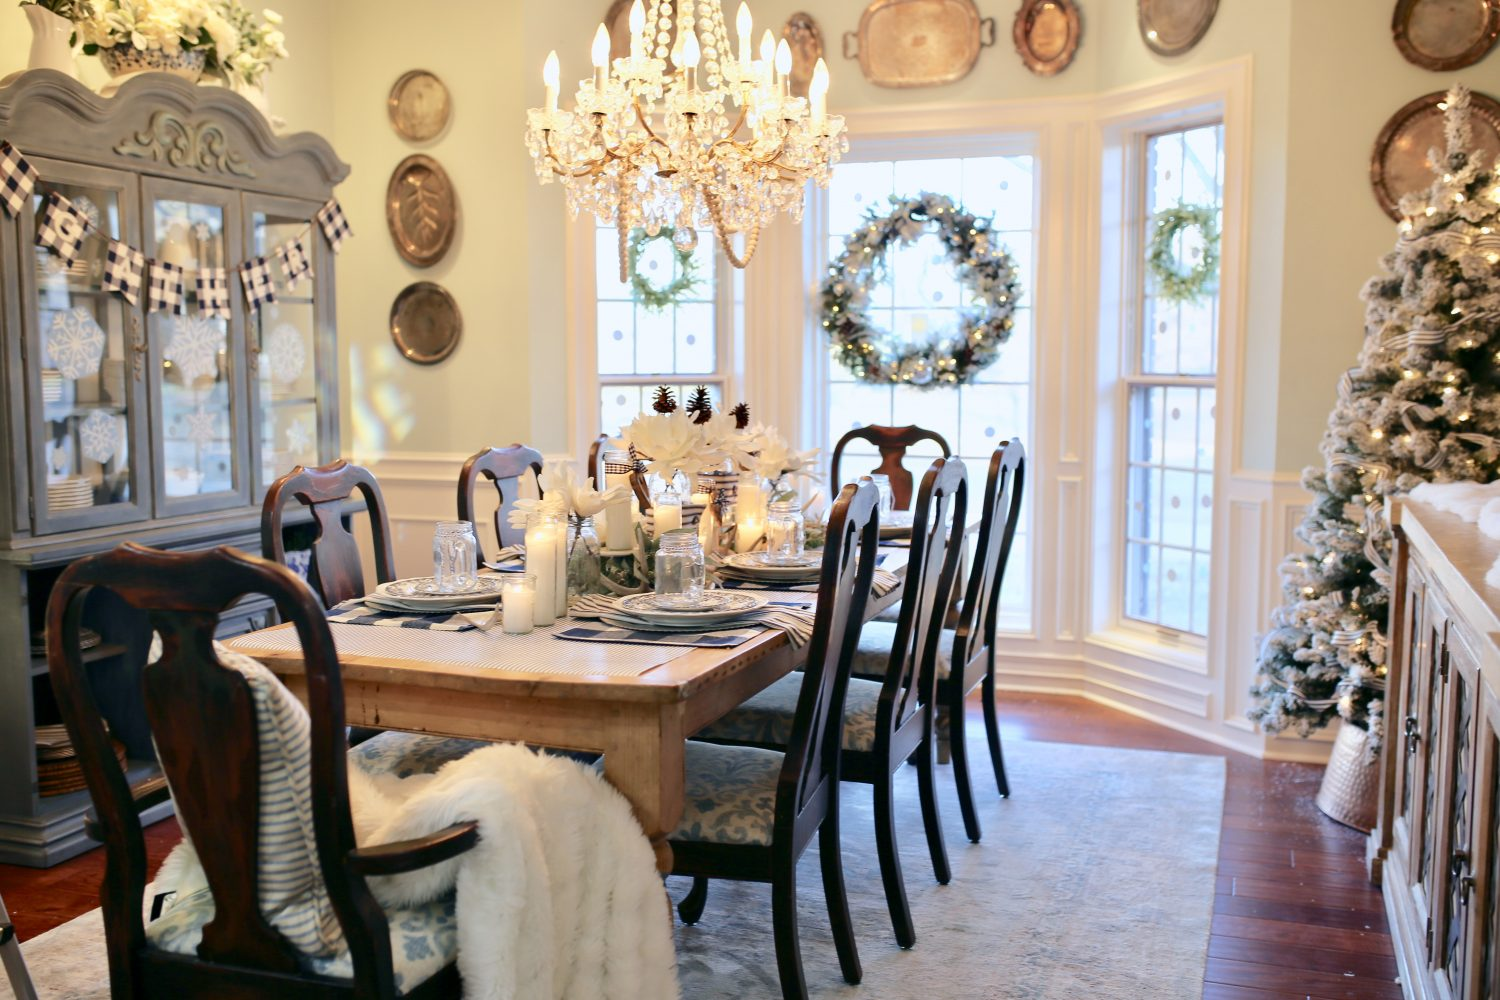 Outstanding How To Style A Table For Winter Cutertudor Download Free Architecture Designs Scobabritishbridgeorg